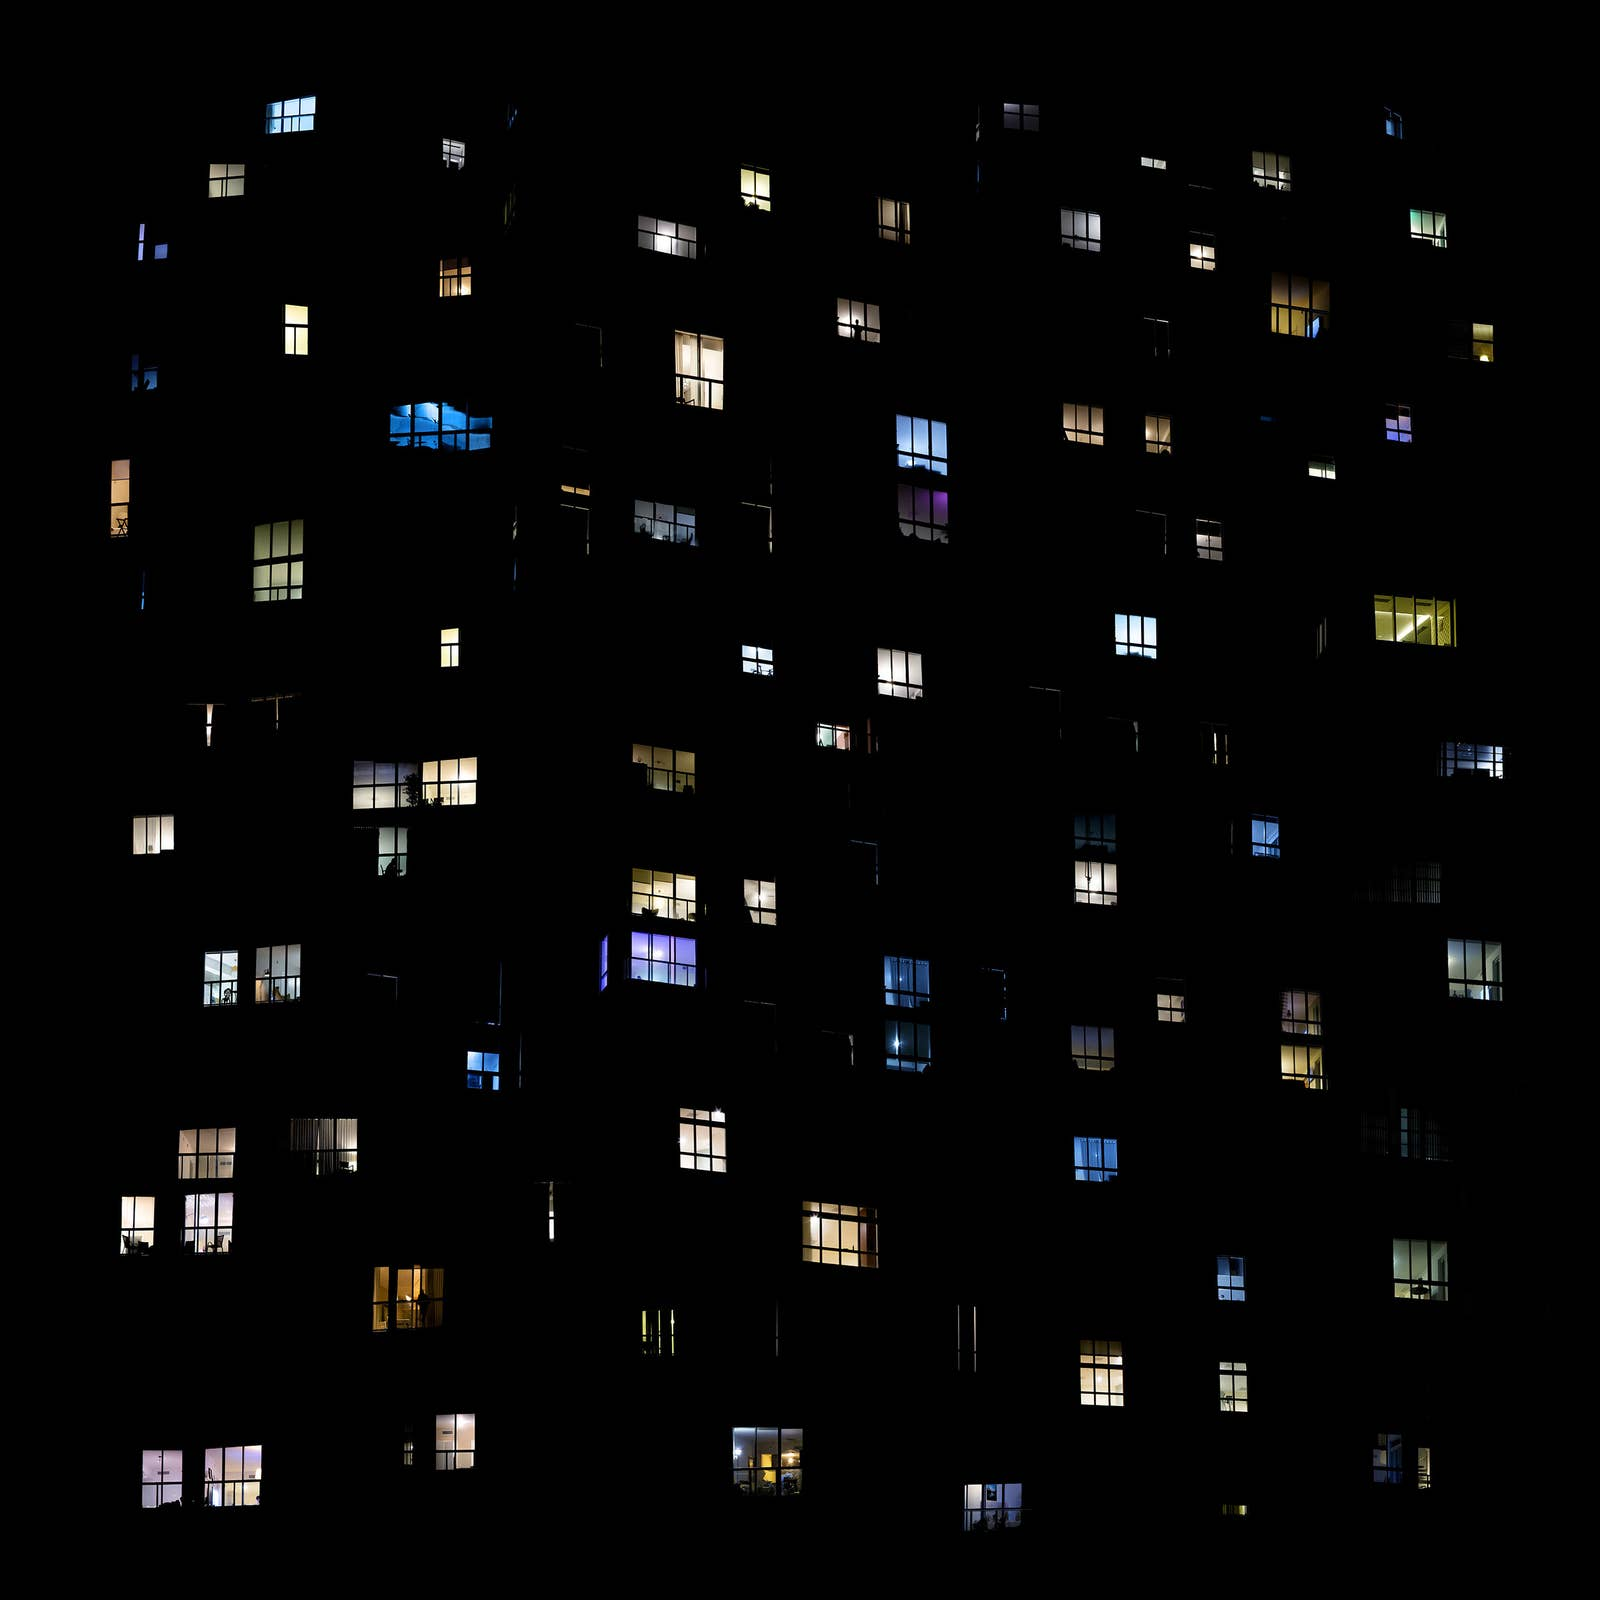 Windows from many apartment buildings